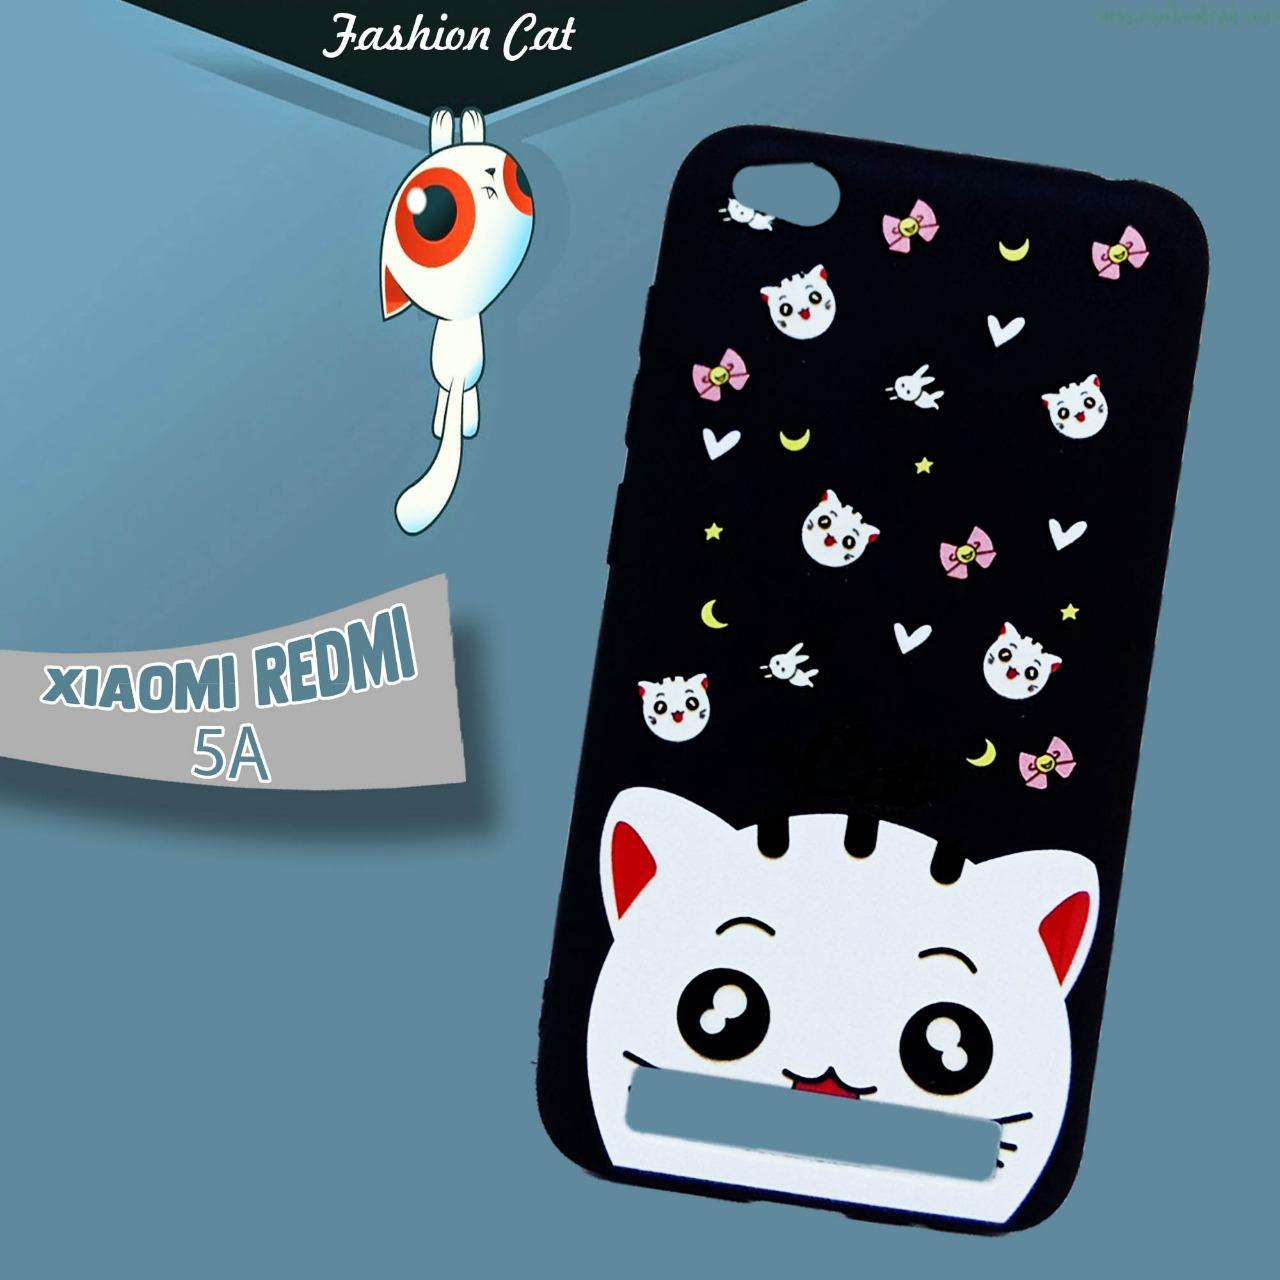 Marintri Case Xiaomi Redmi 5A - New Fashion Cat Cute Black